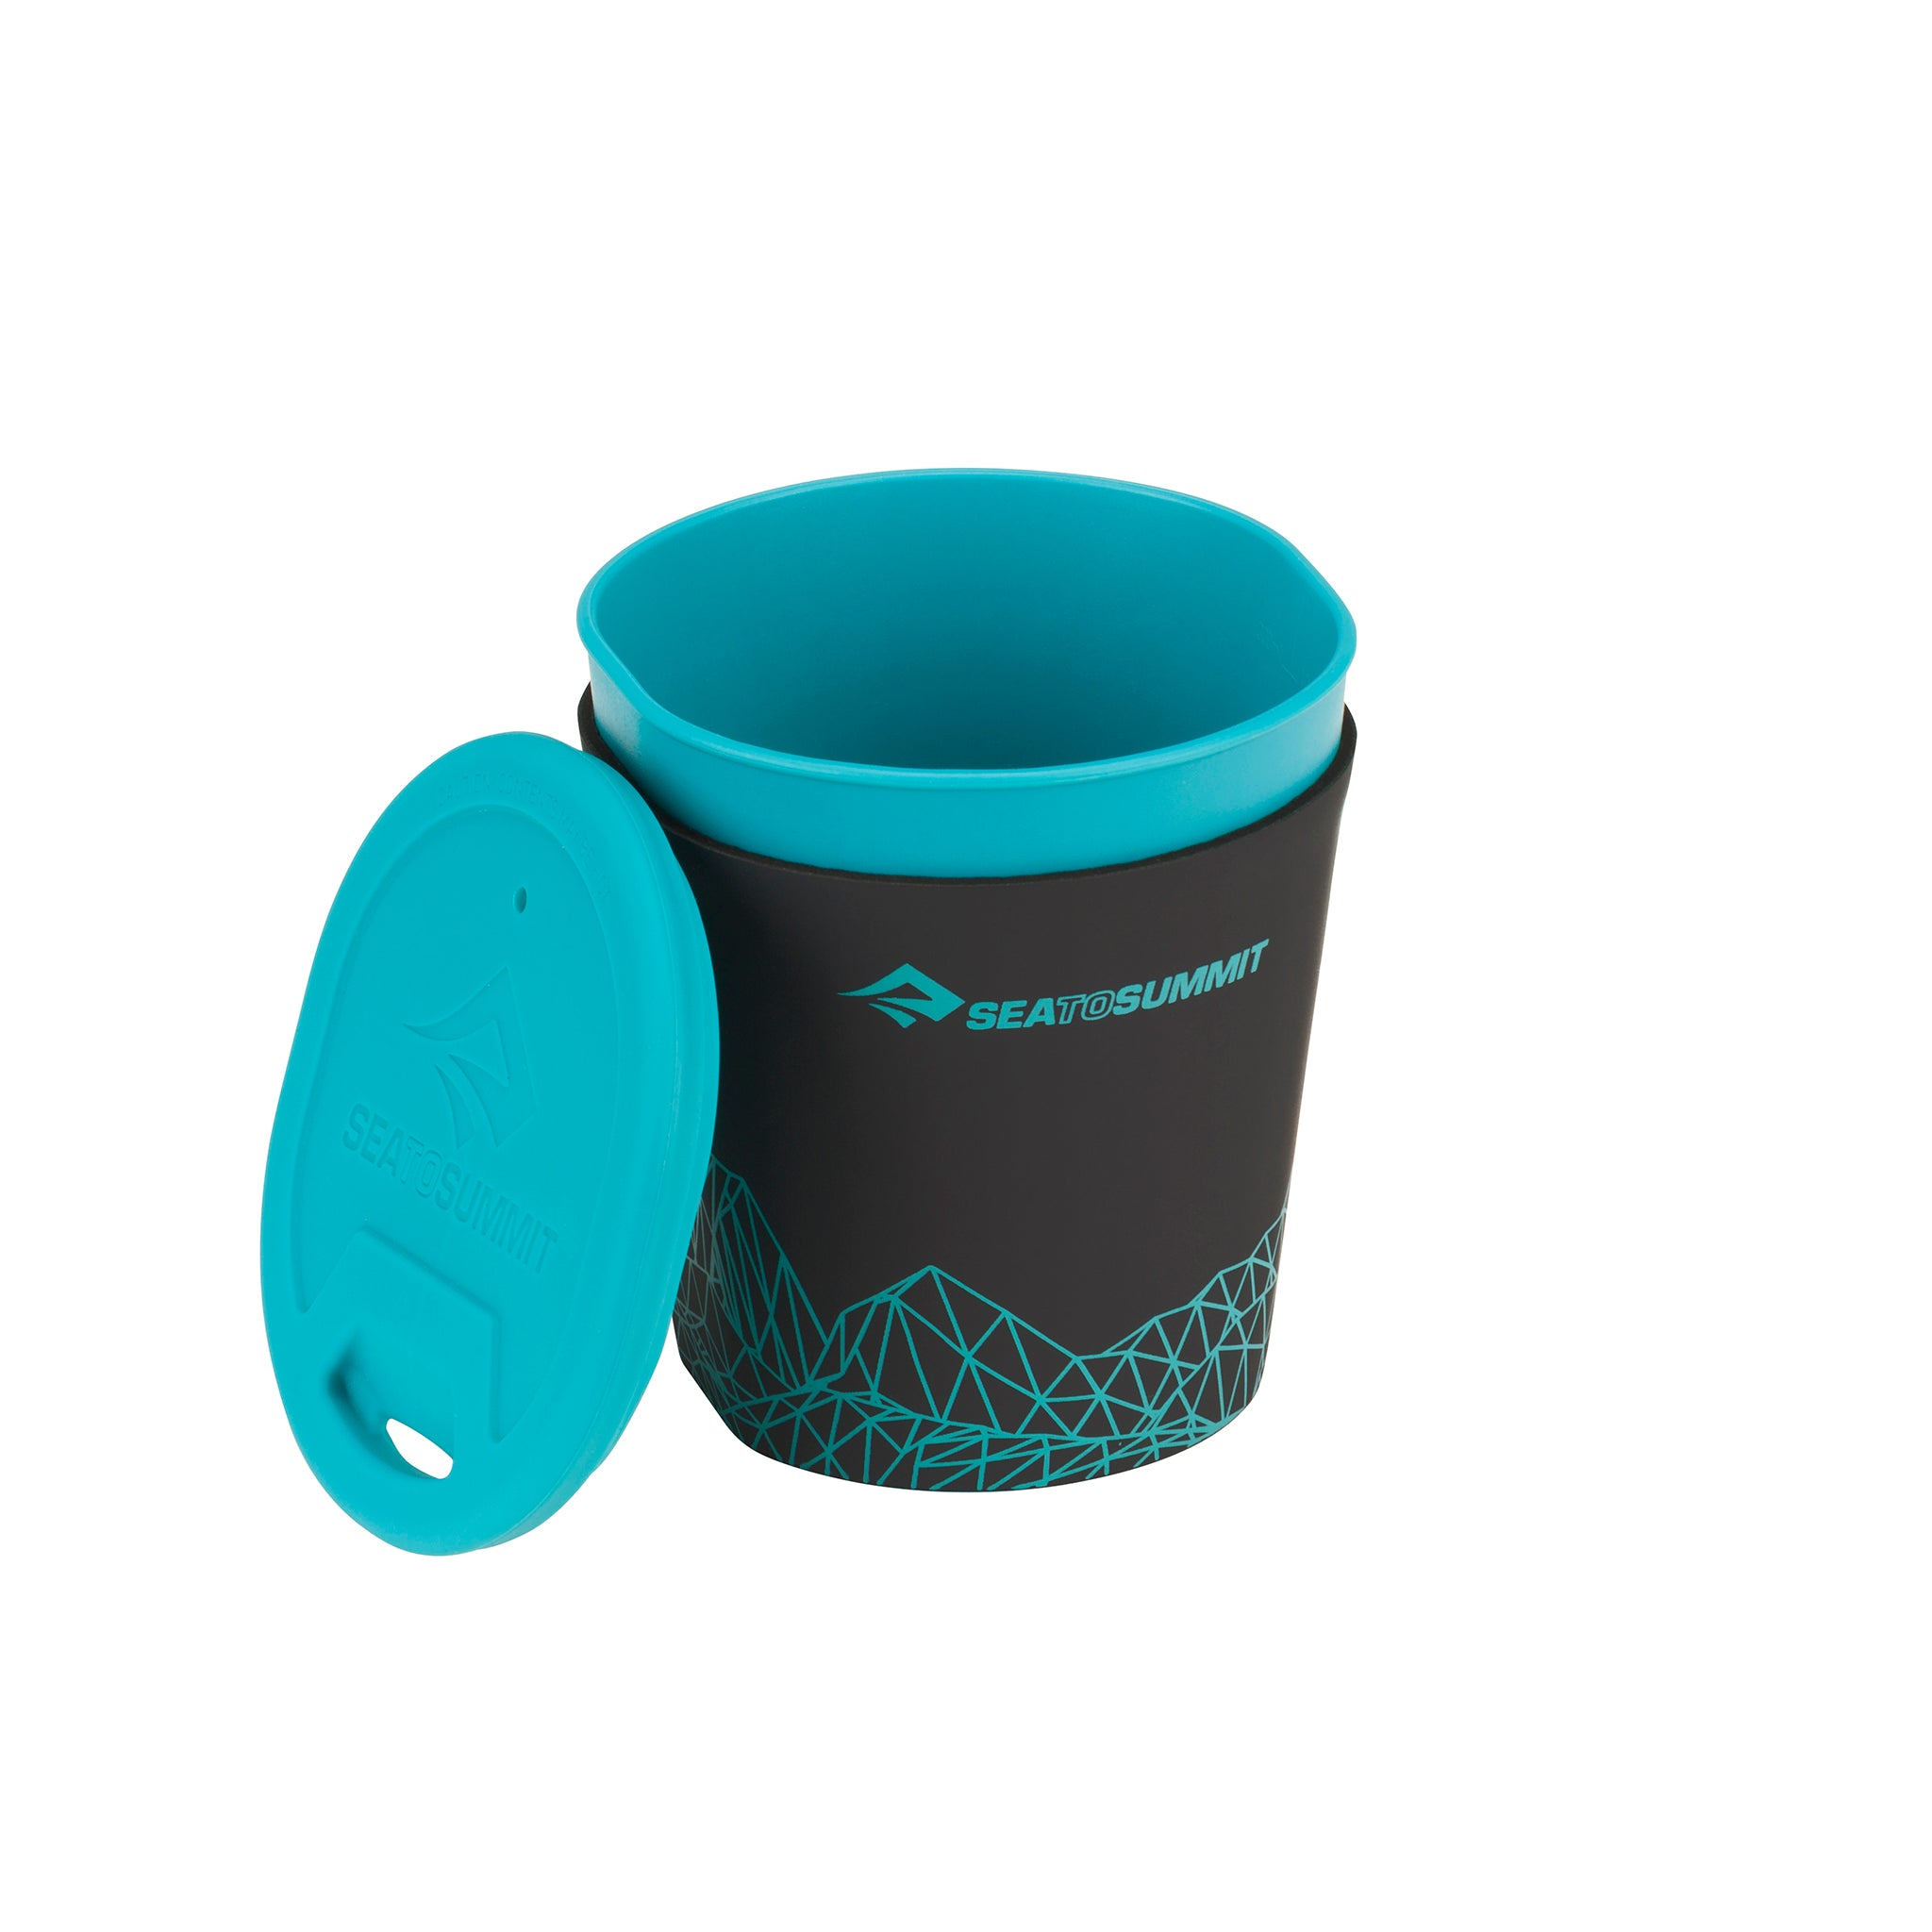 Delta Light Insulated Mug by Seal to Summit – Sea to Summit